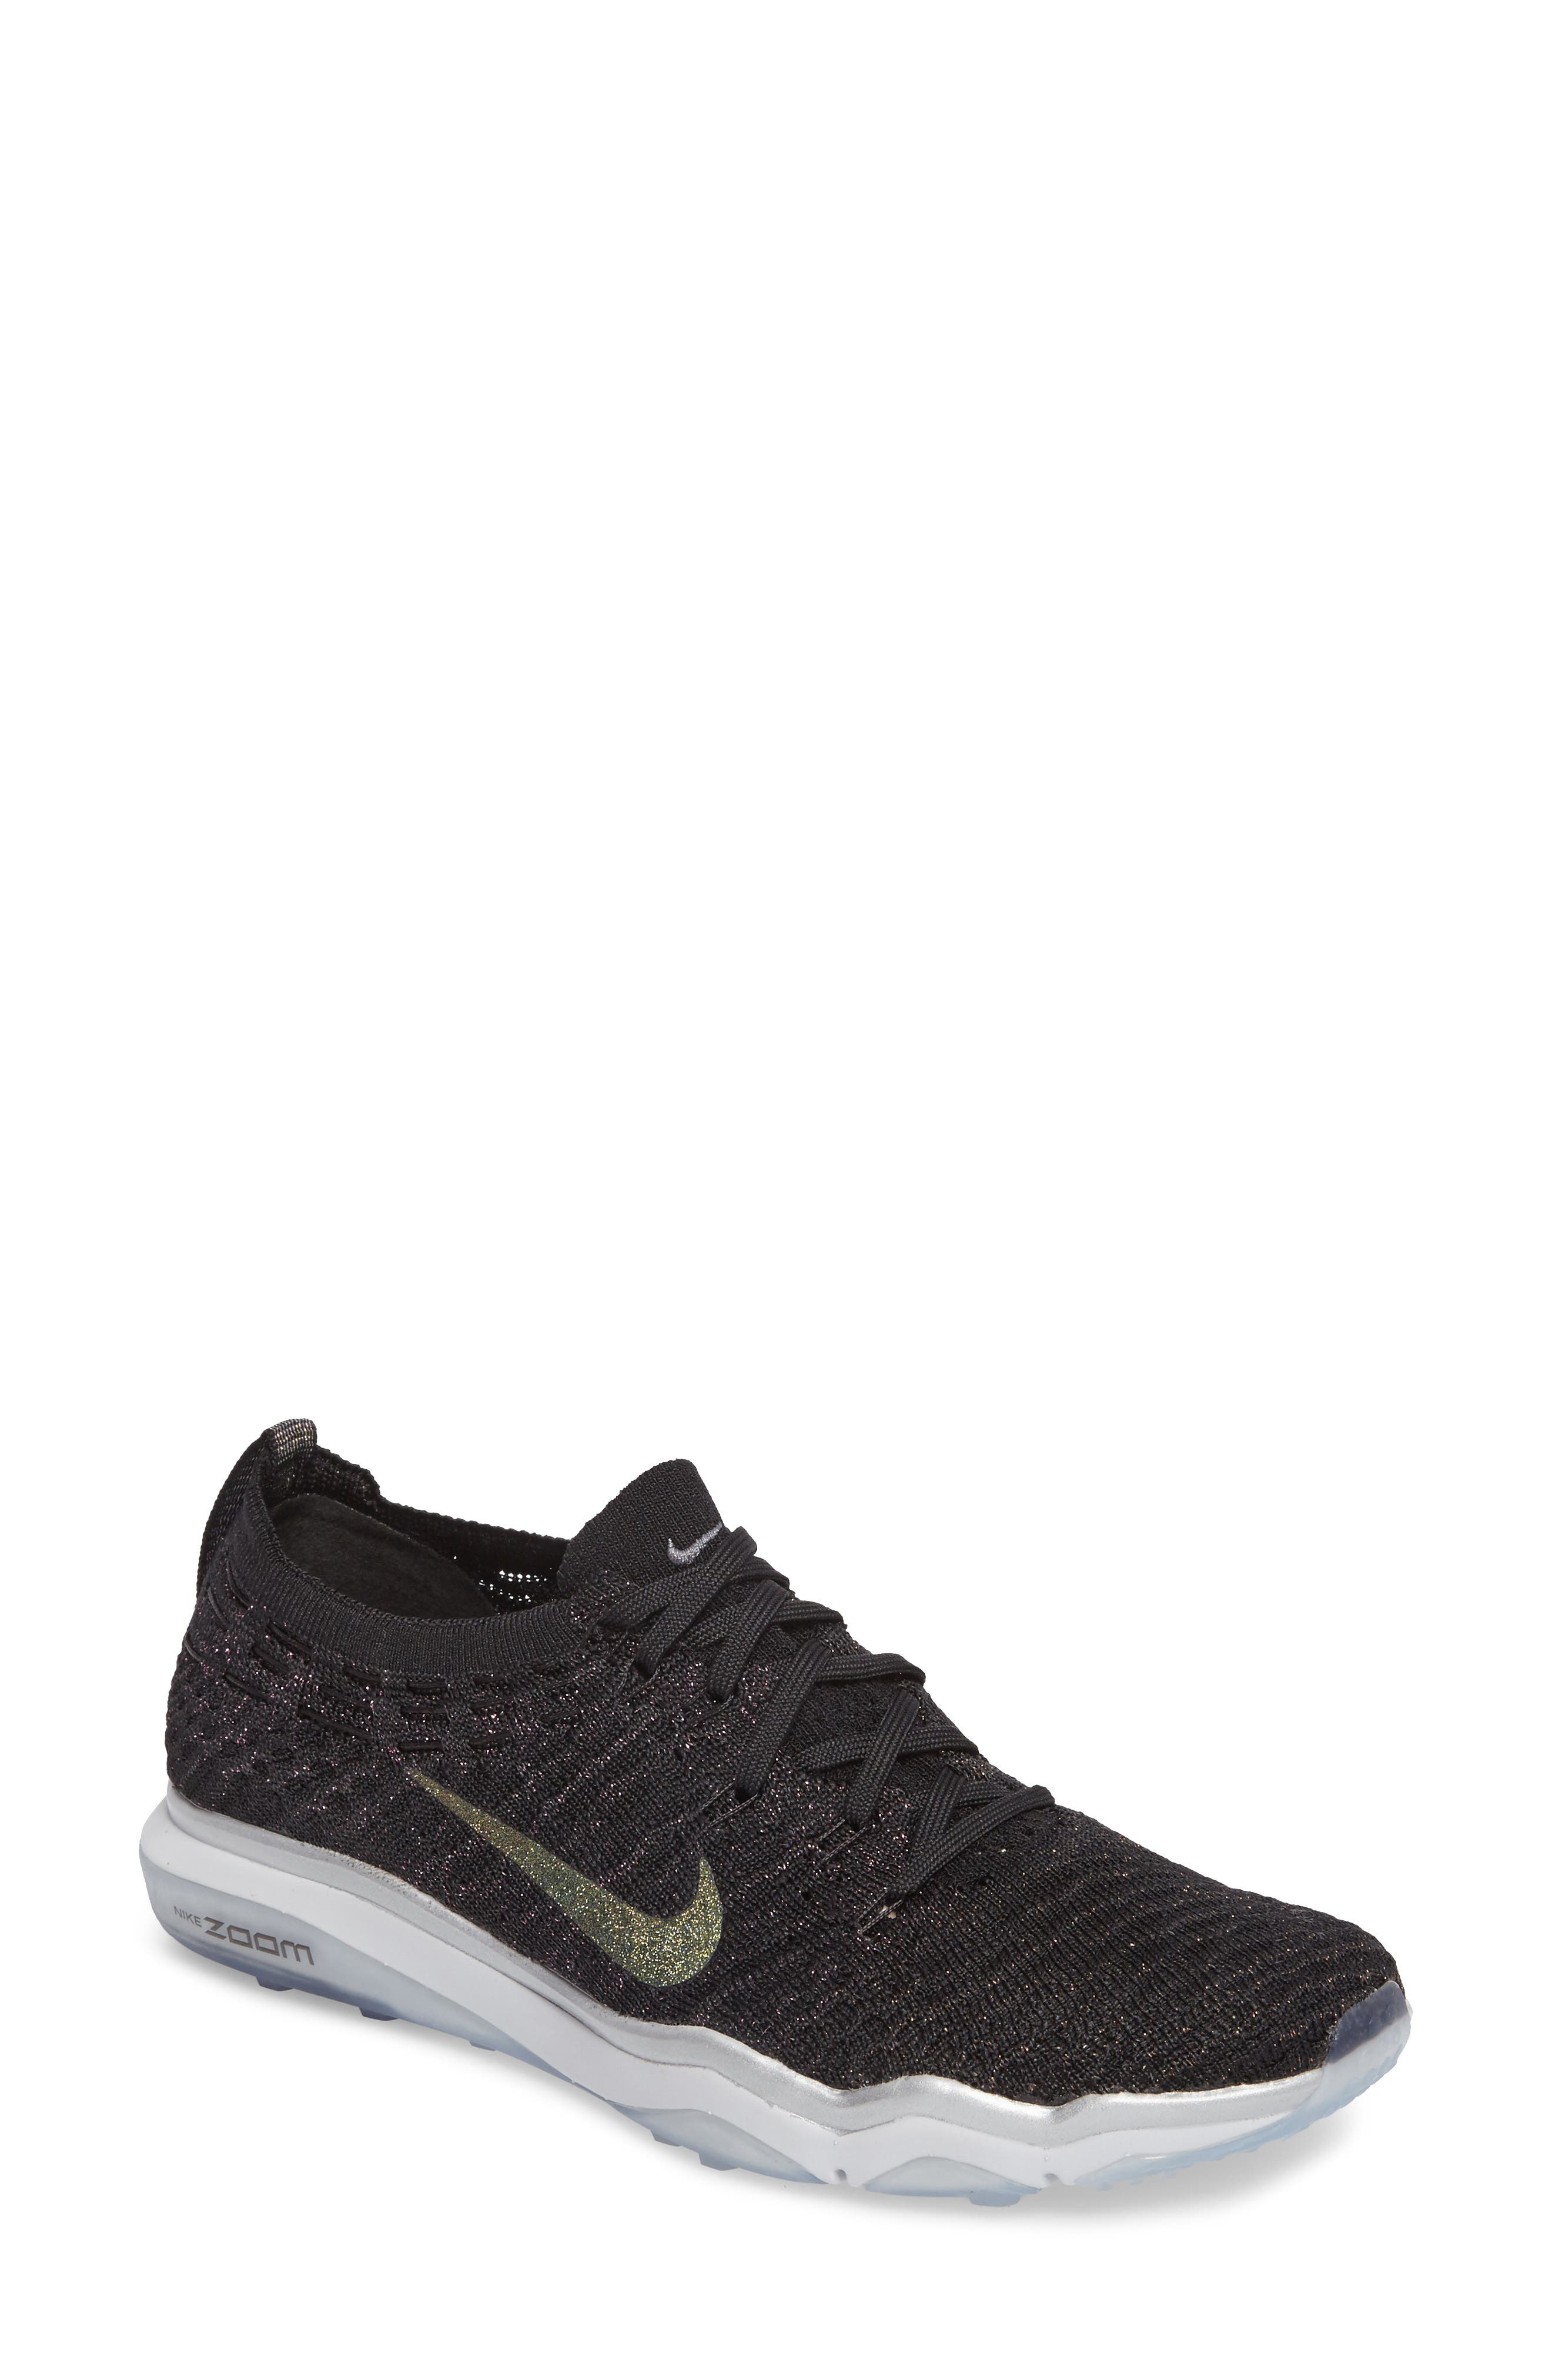 Air Zoom Fearless Flyknit Metallic Training Shoe,                             Main thumbnail 1, color,